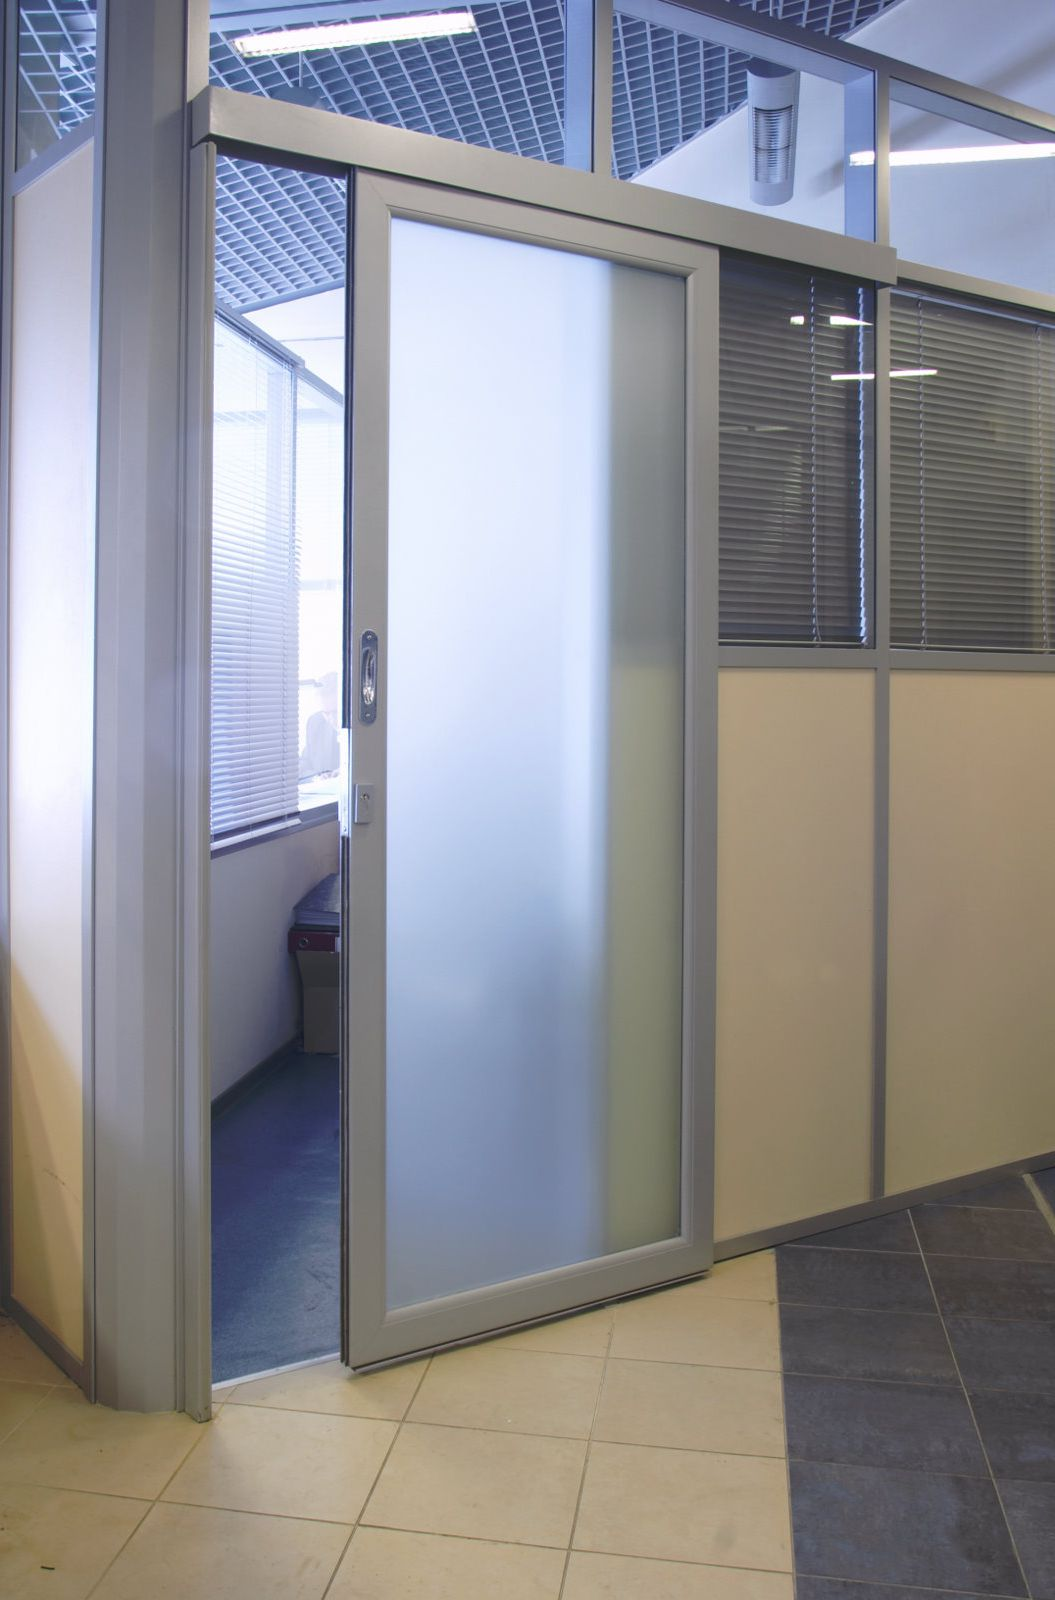 Commercial Aluminum Doors : Beautiful aluminium interior door with white frosted glass